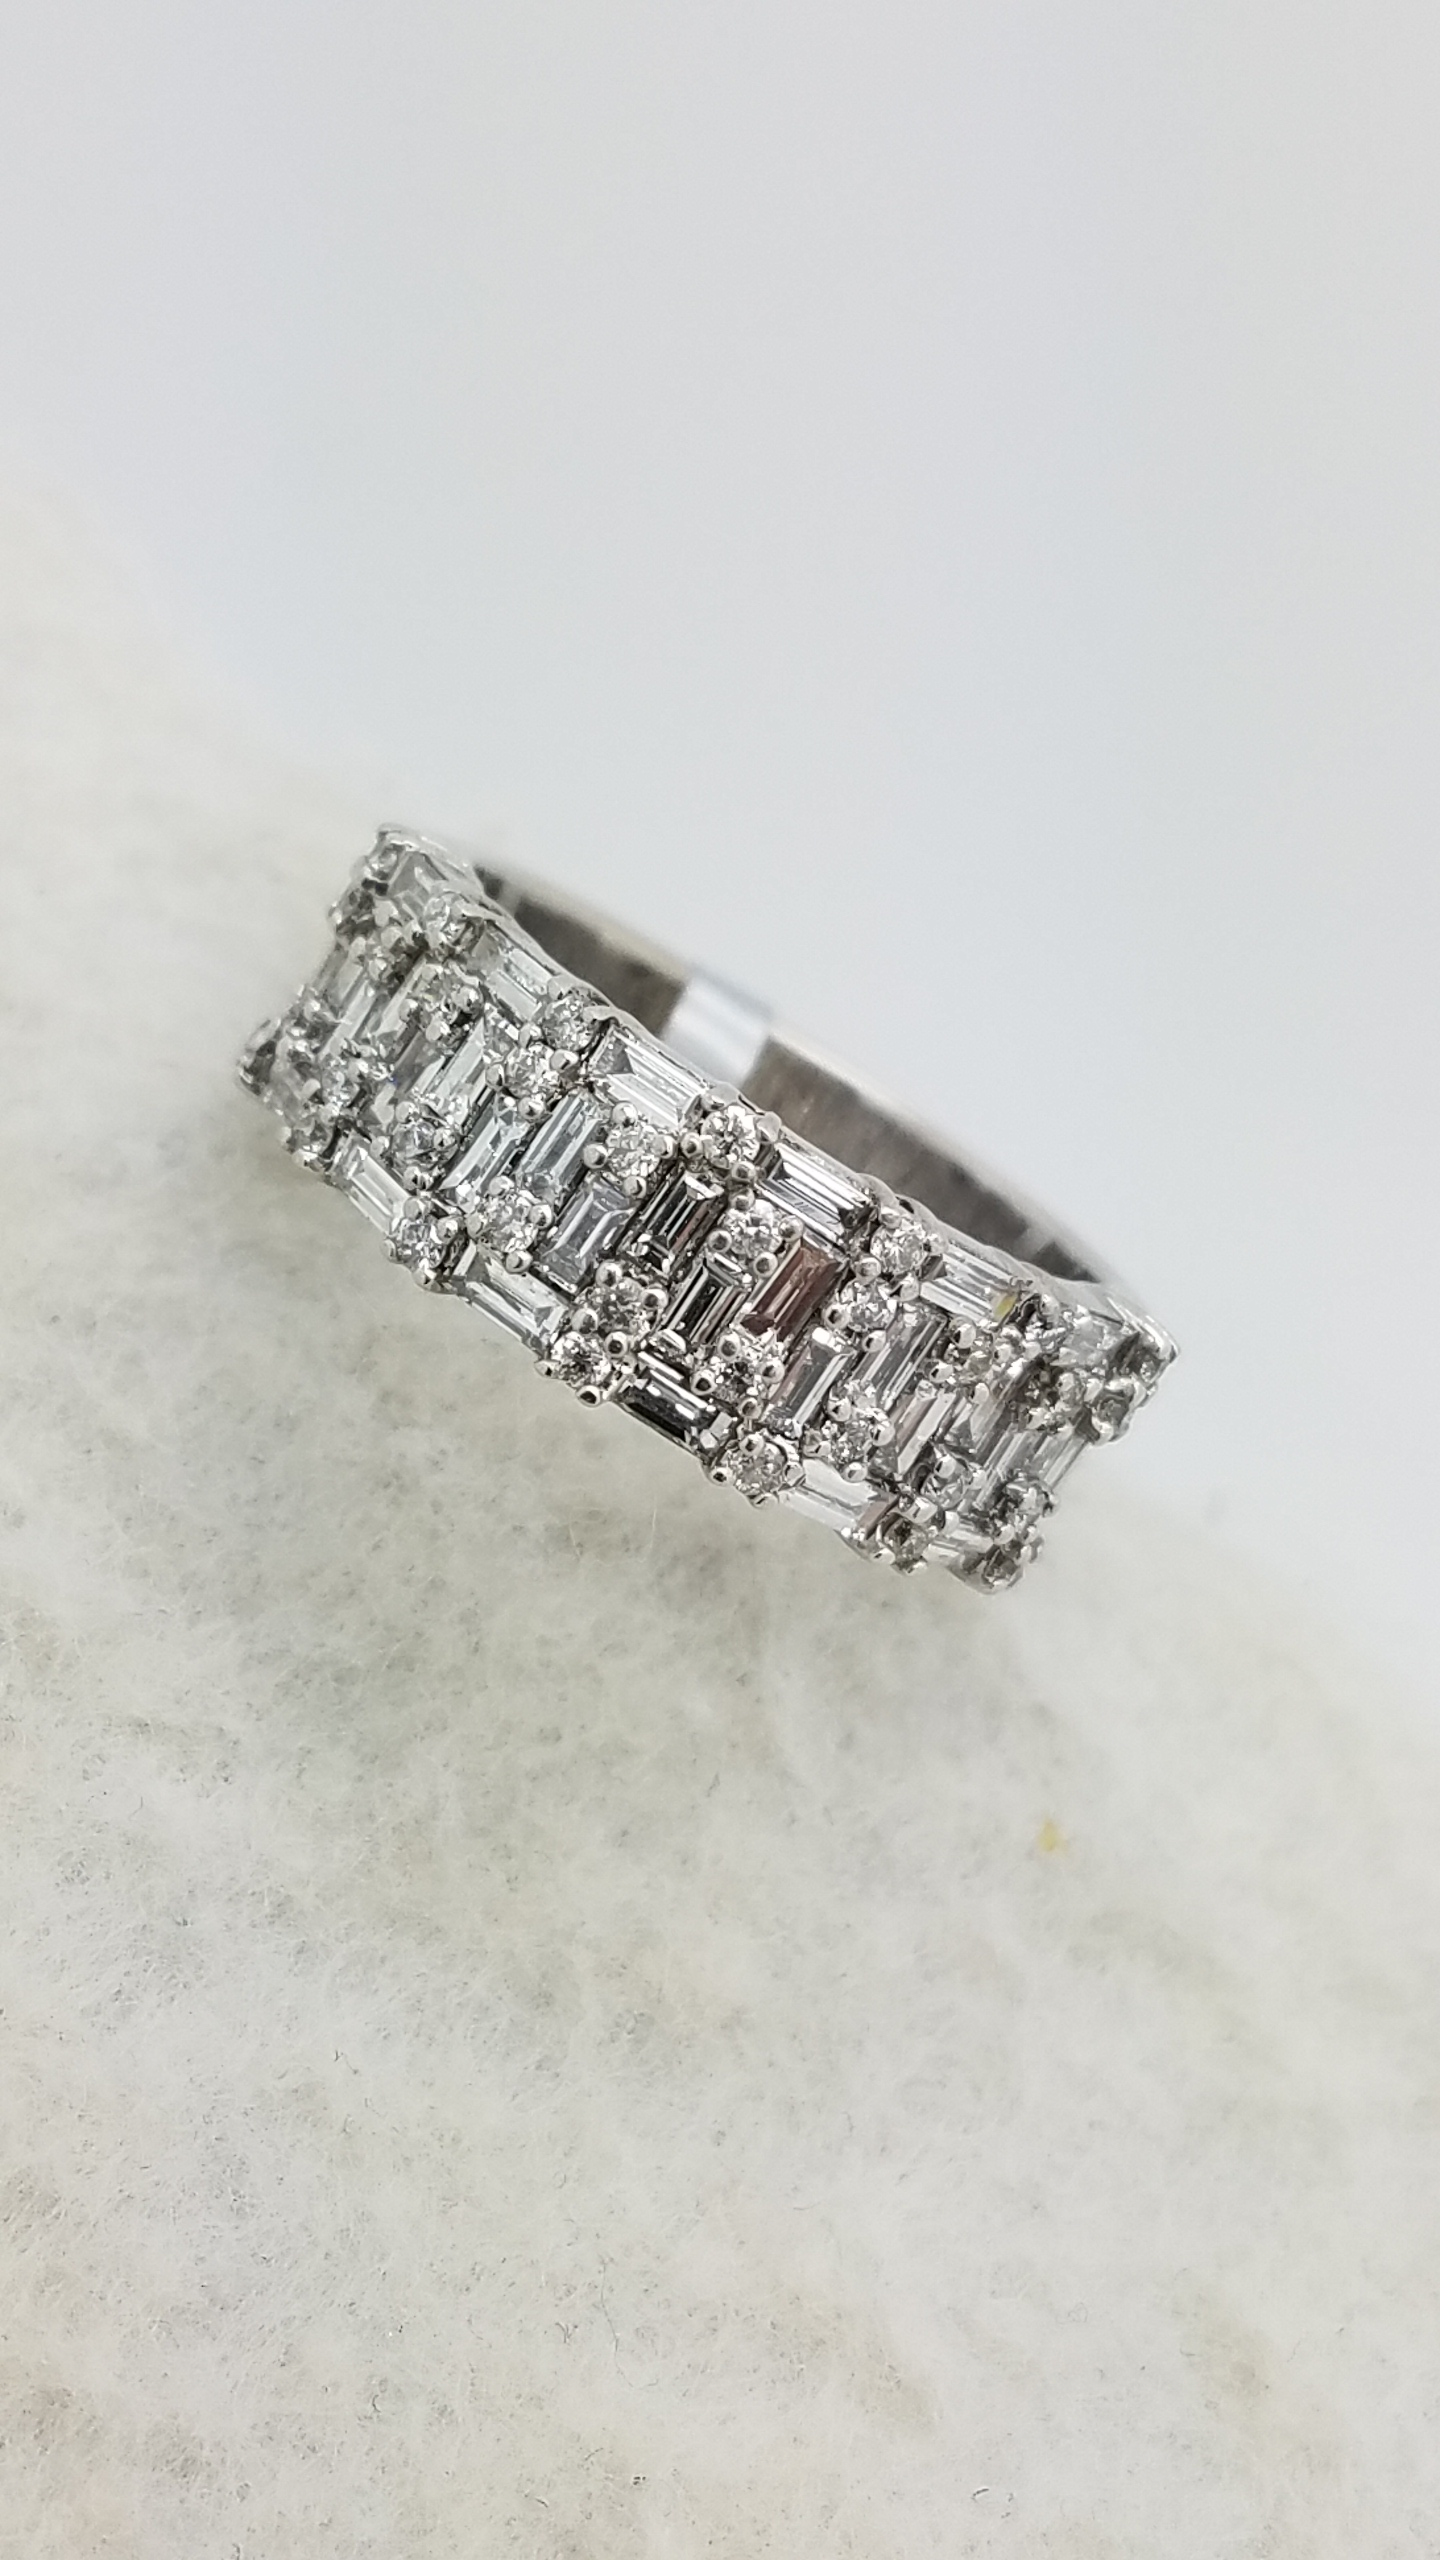 STUNNING! 18K        White Gold        CLUSTER        1.25        ct        ROUND + BAGUETTE        Cut                Diamond        Shared Prong        Anniversary Band        Ring